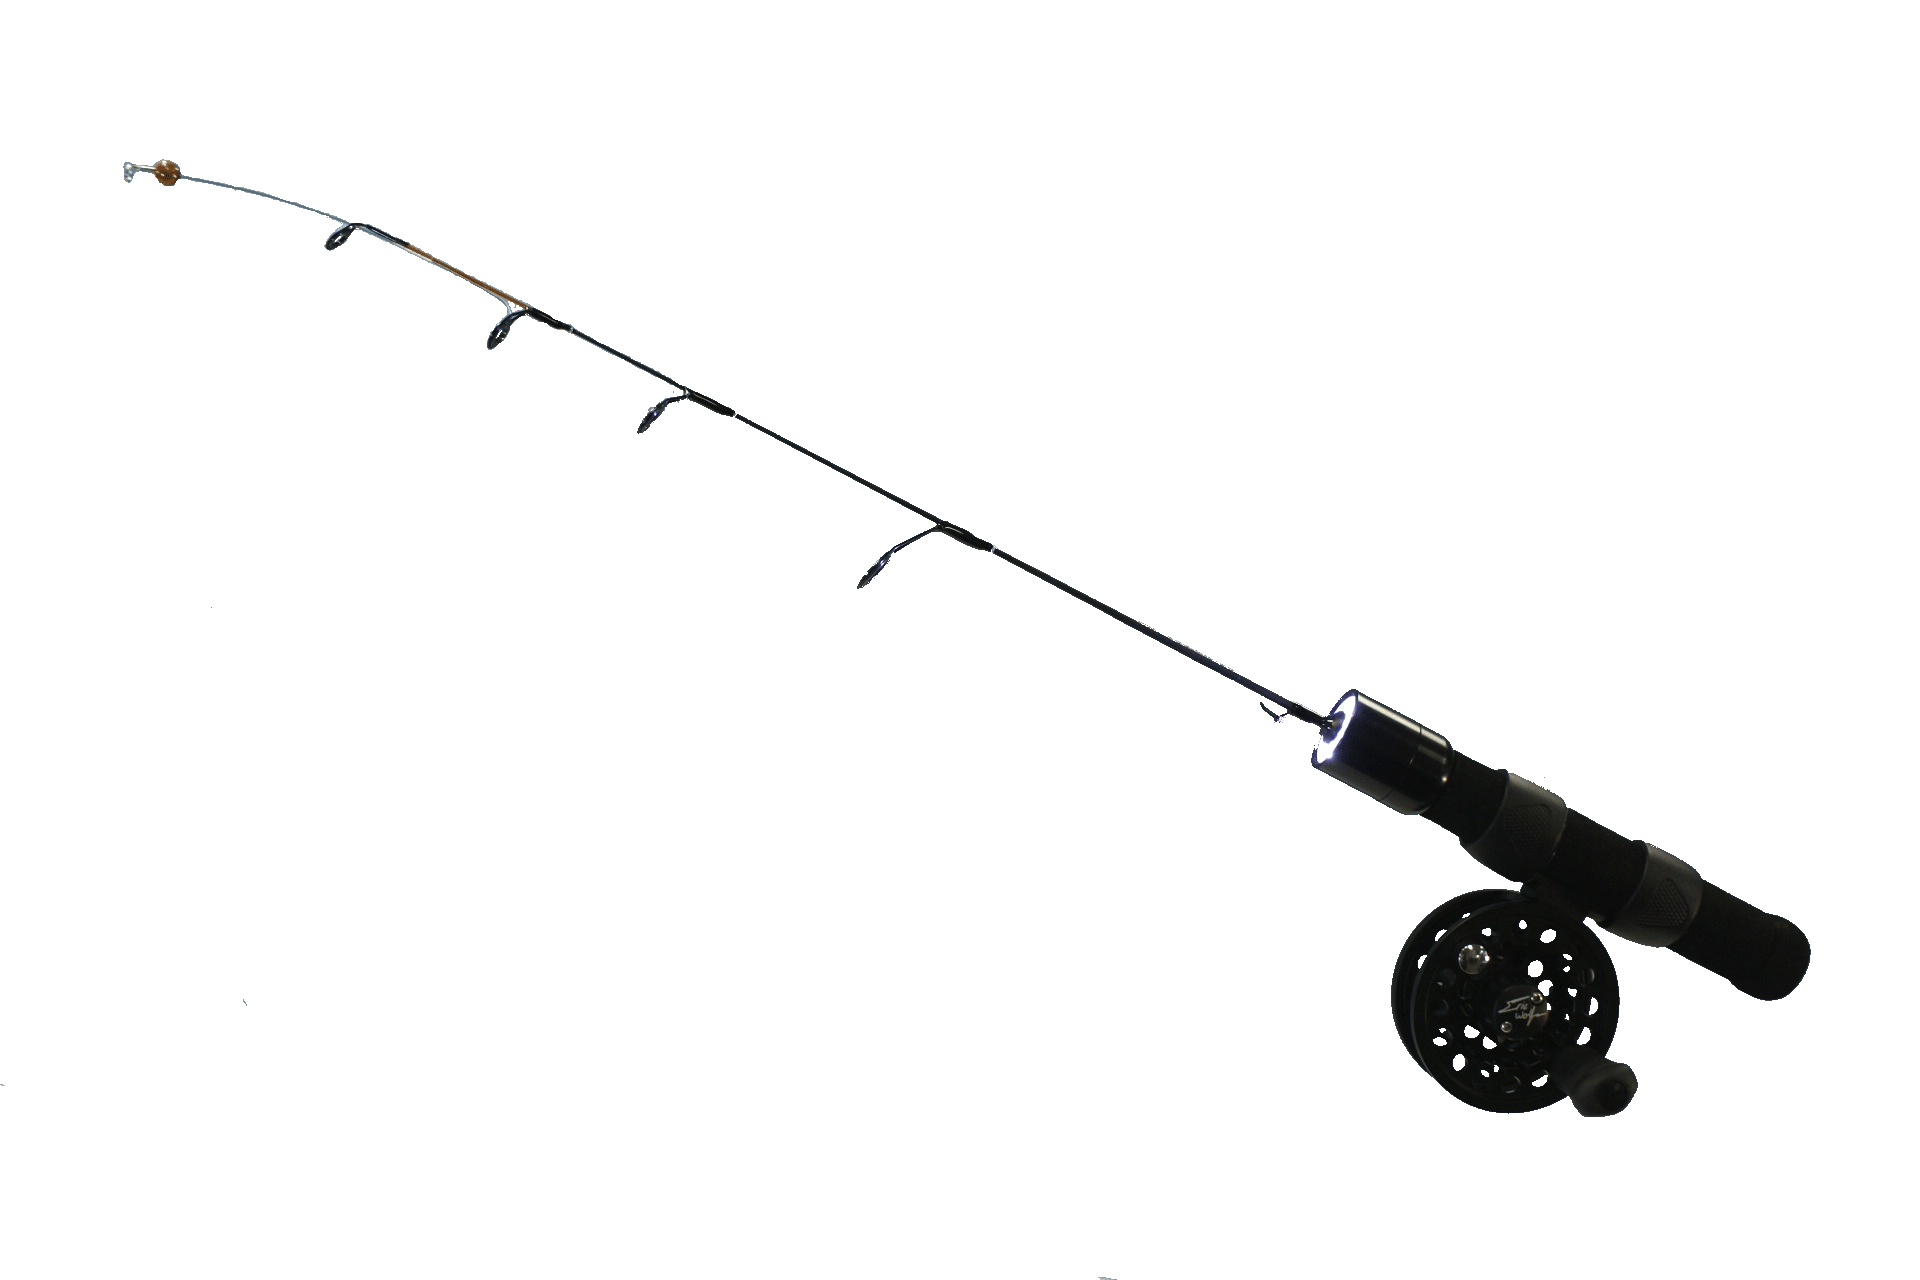 Fishing Pole - Cliparts.co